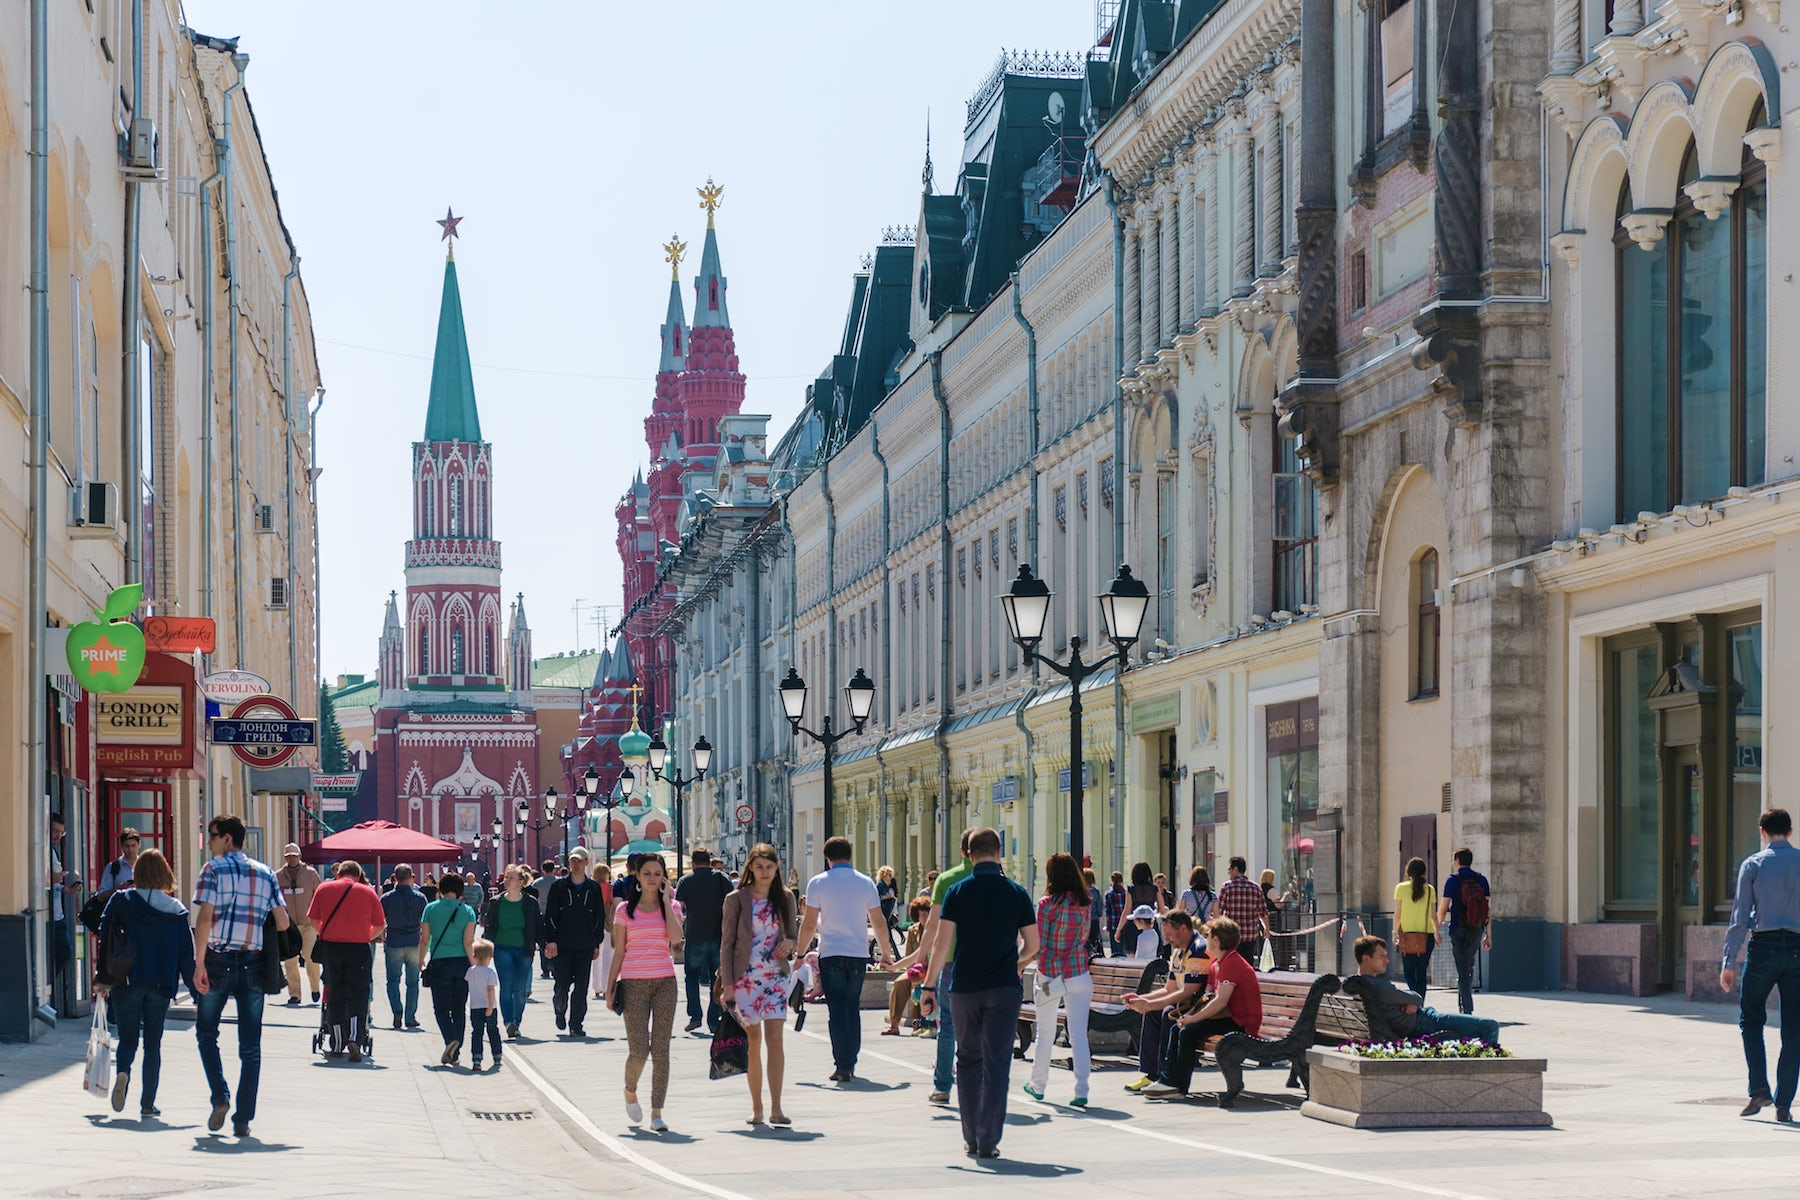 Shoppers on Nikolskaya Street, Moscow | Source: Shutterstock